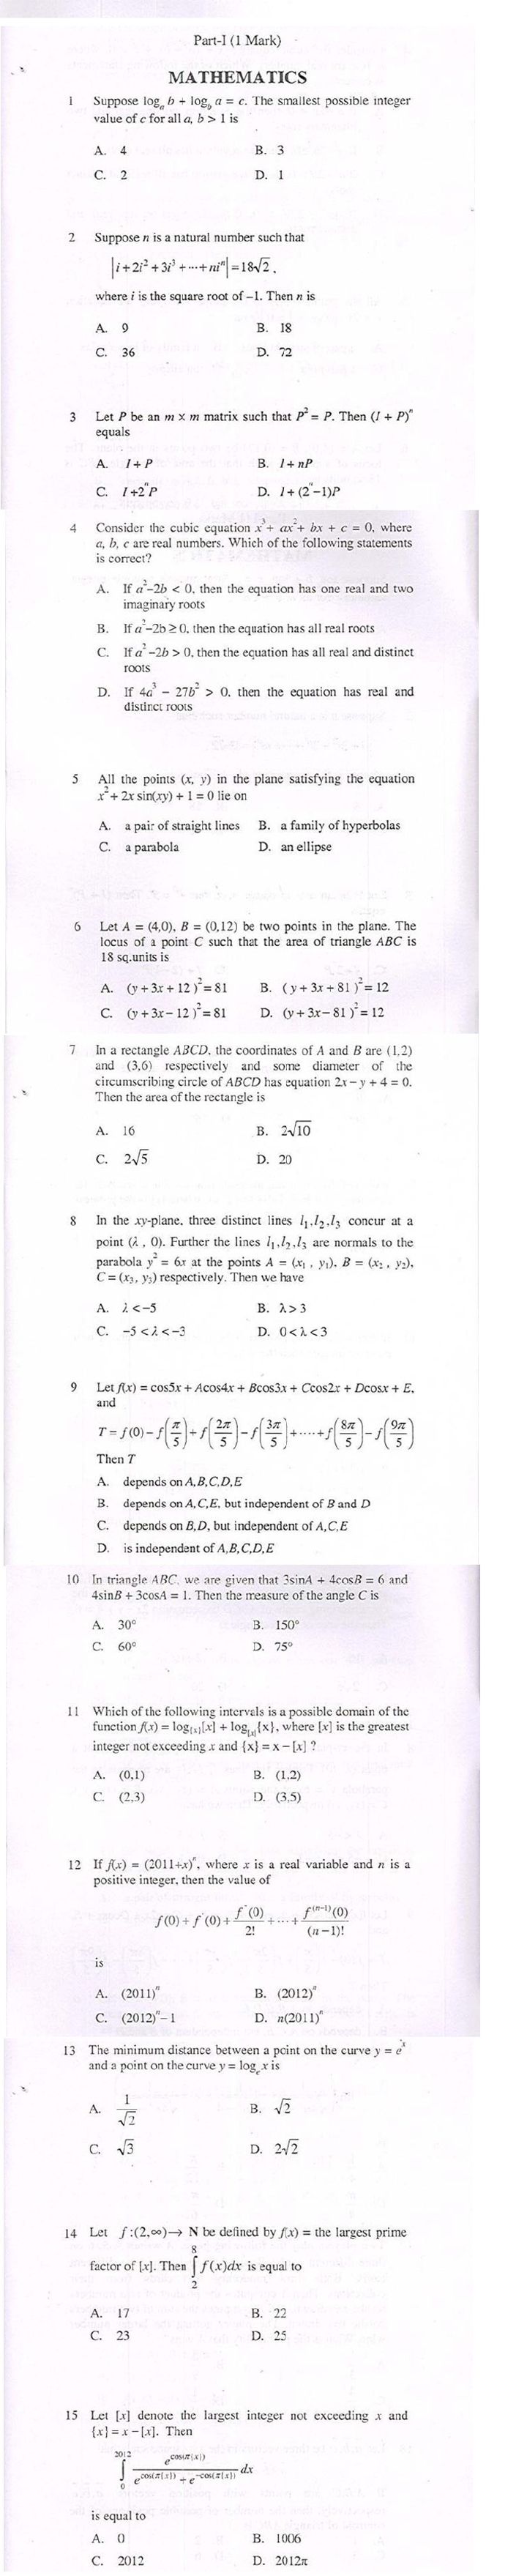 KVPY 2011 SB/SX Question Papers